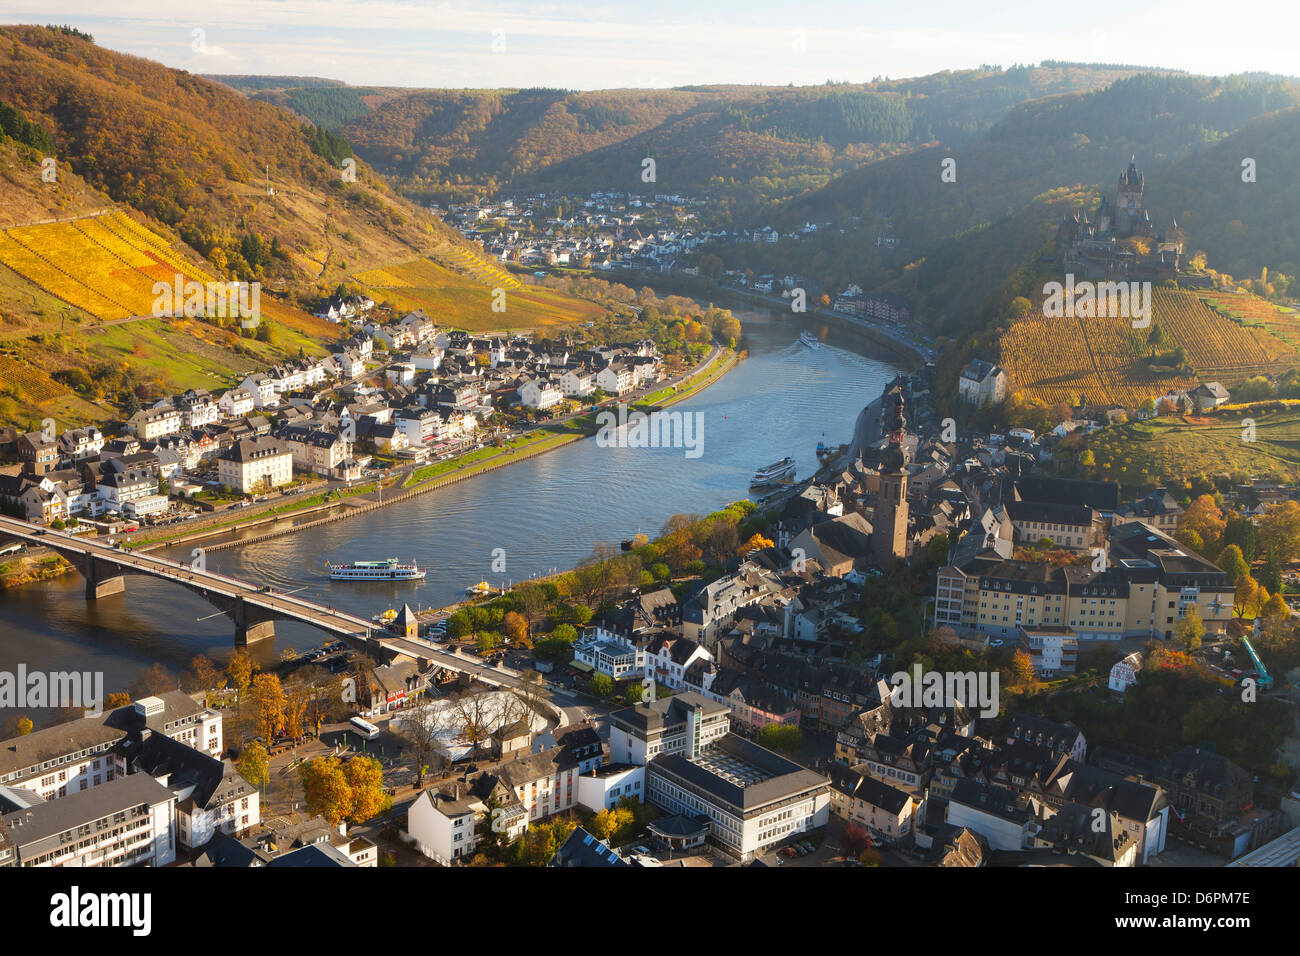 View over Cochem and the Mosel River in autumn, Cochem, Rheinland-Pfalz (Rhineland-Palatinate), Germany, Europe - Stock Image